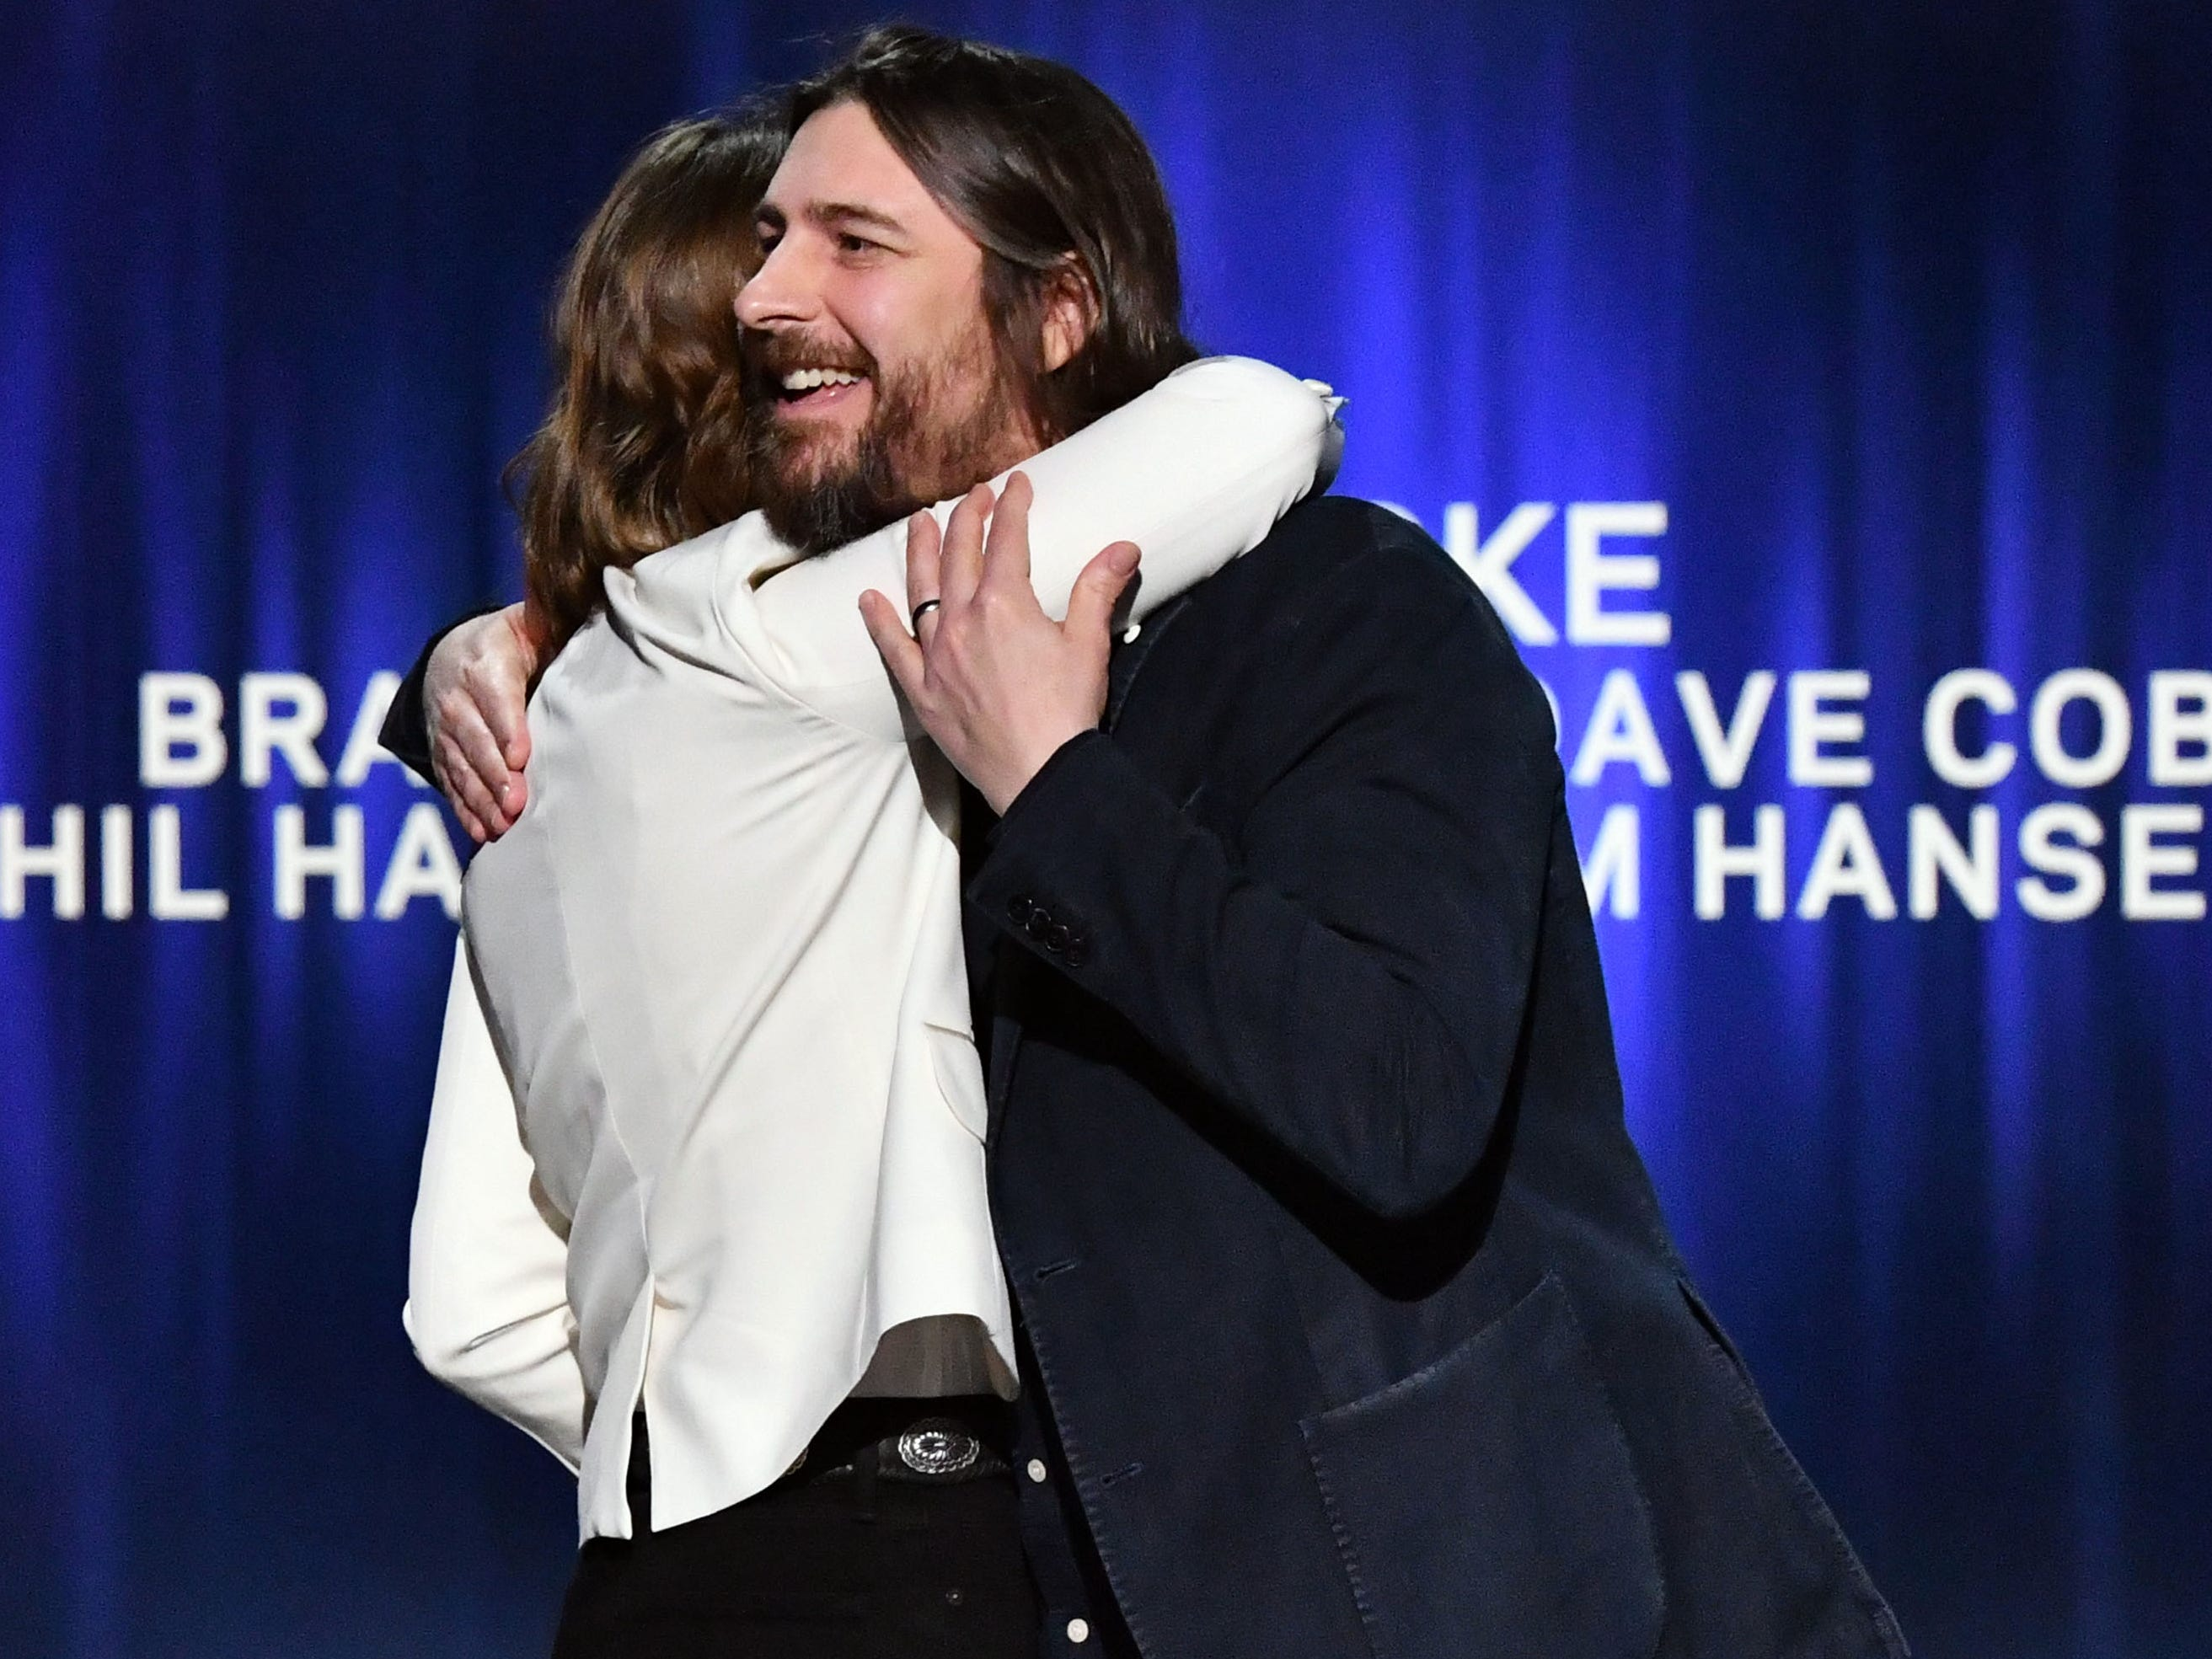 Brandi Carlile embraces Dave Cobb as she accepts the award for Best American Roots Song for The Joke at the GRAMMY Awards Premiere Ceremony at the Microsoft Theater in Los Angeles, Calif.